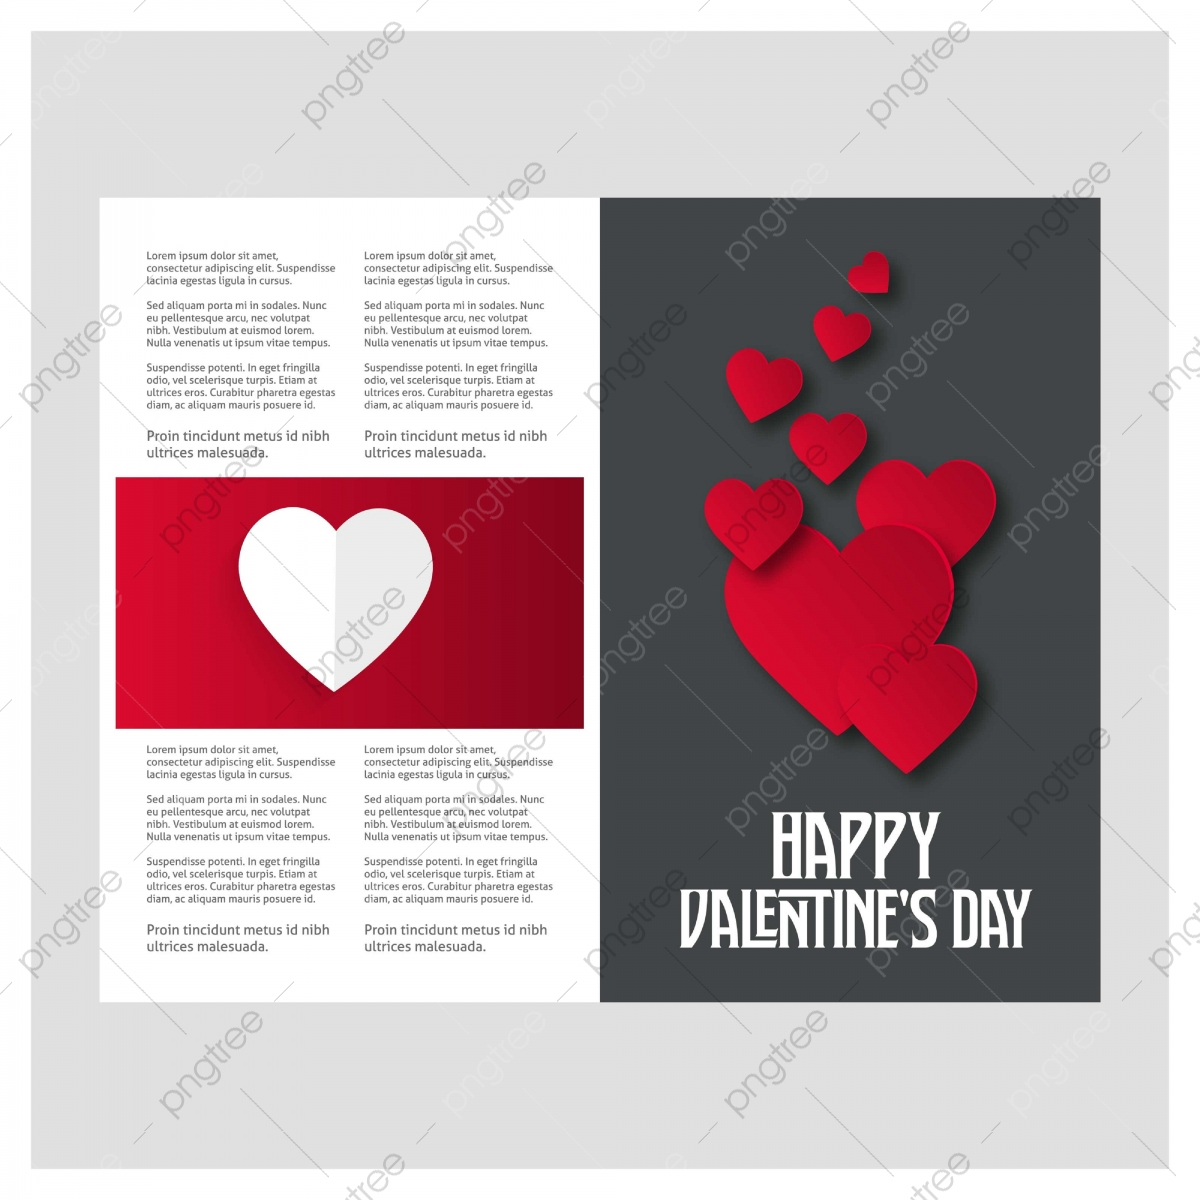 pngtree valentines day background with icon set pattern vector illustr png image